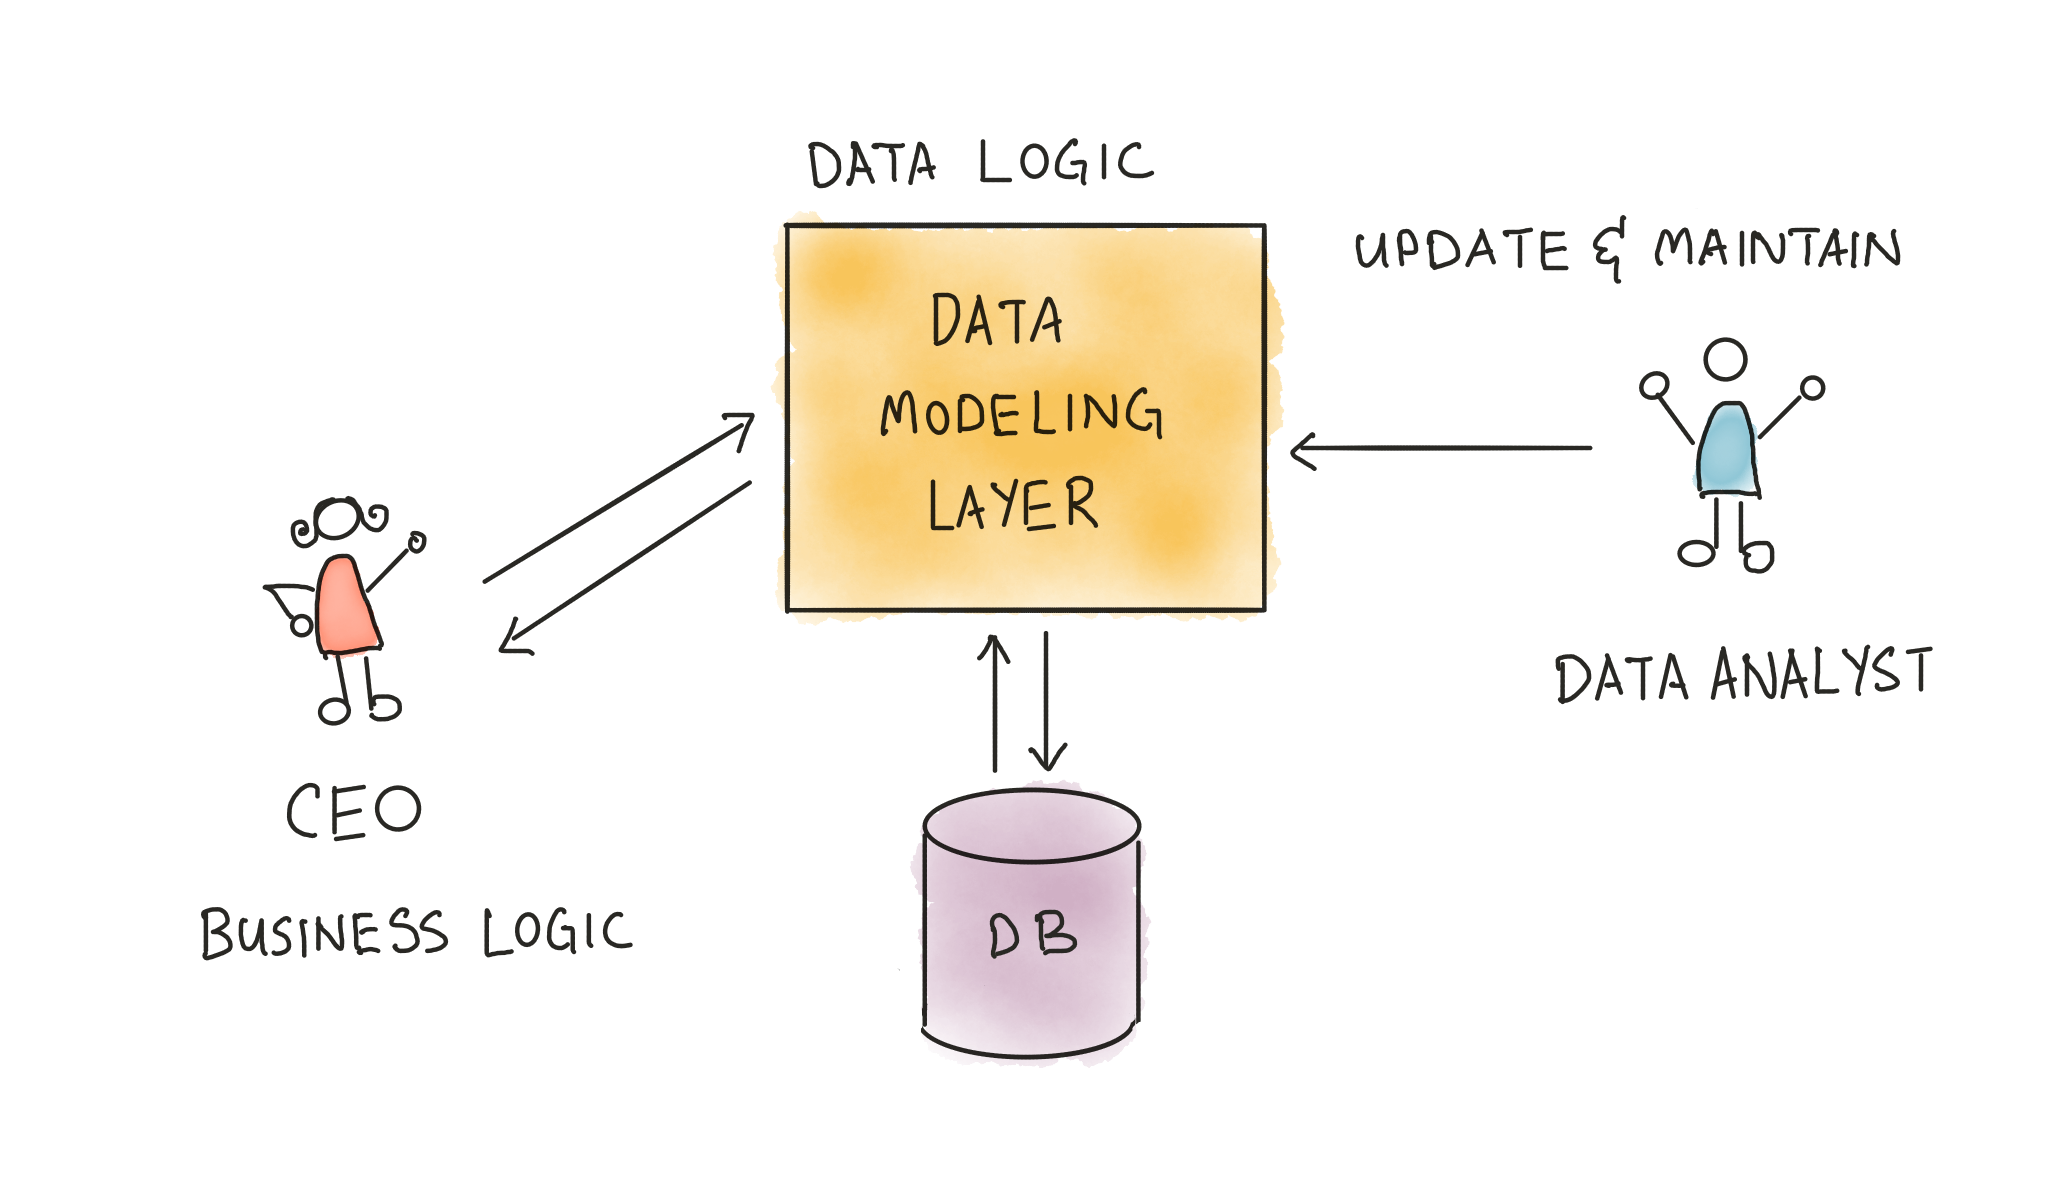 Data modeling layer